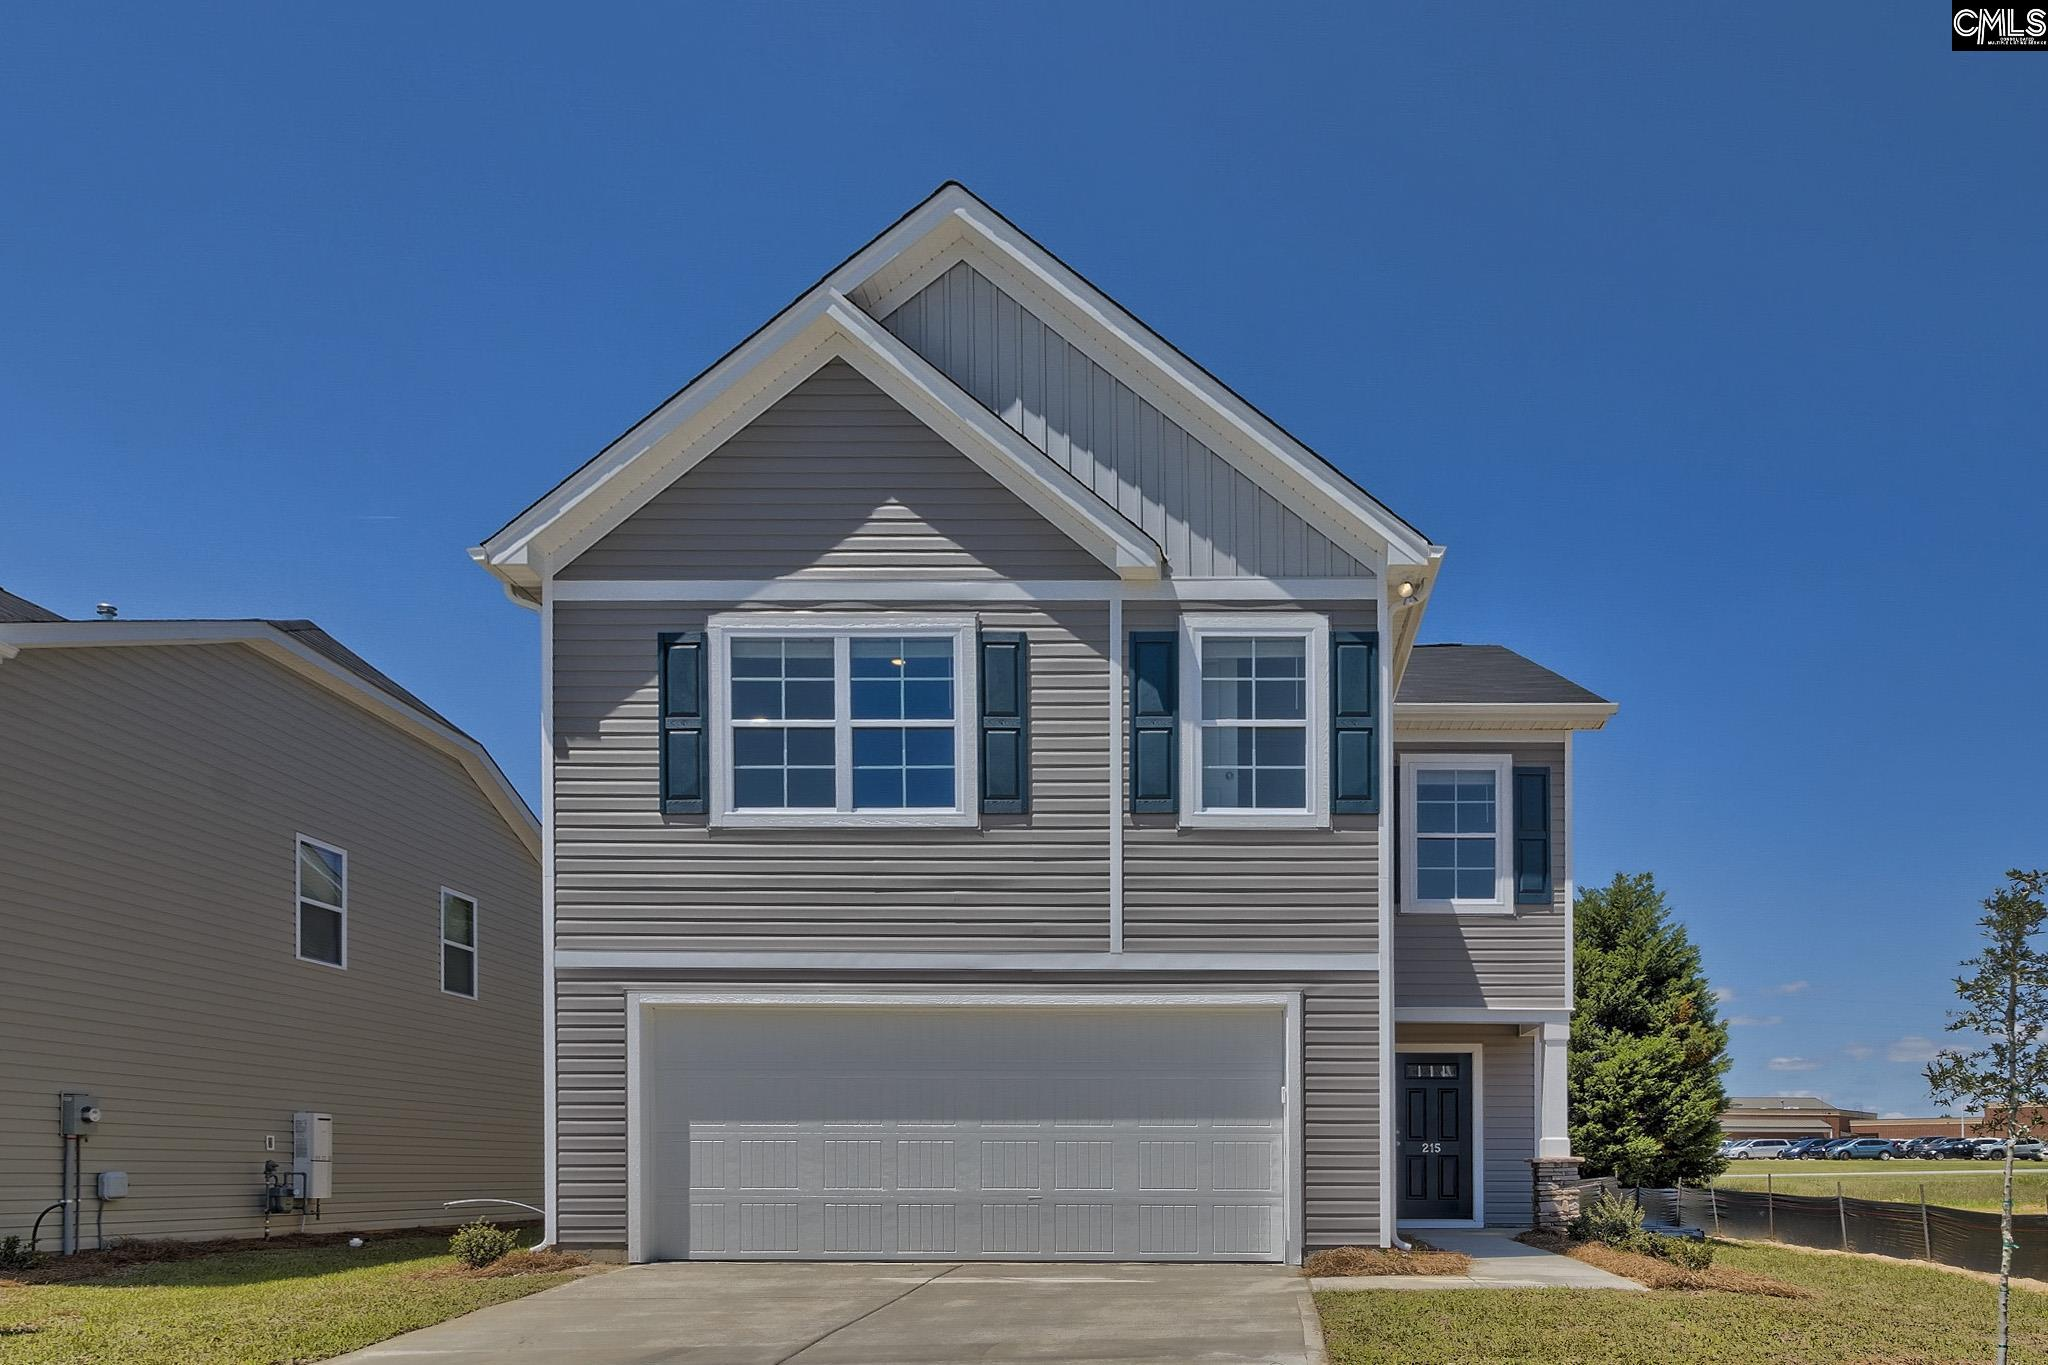 159 Plum Orchard West Columbia, SC 29170